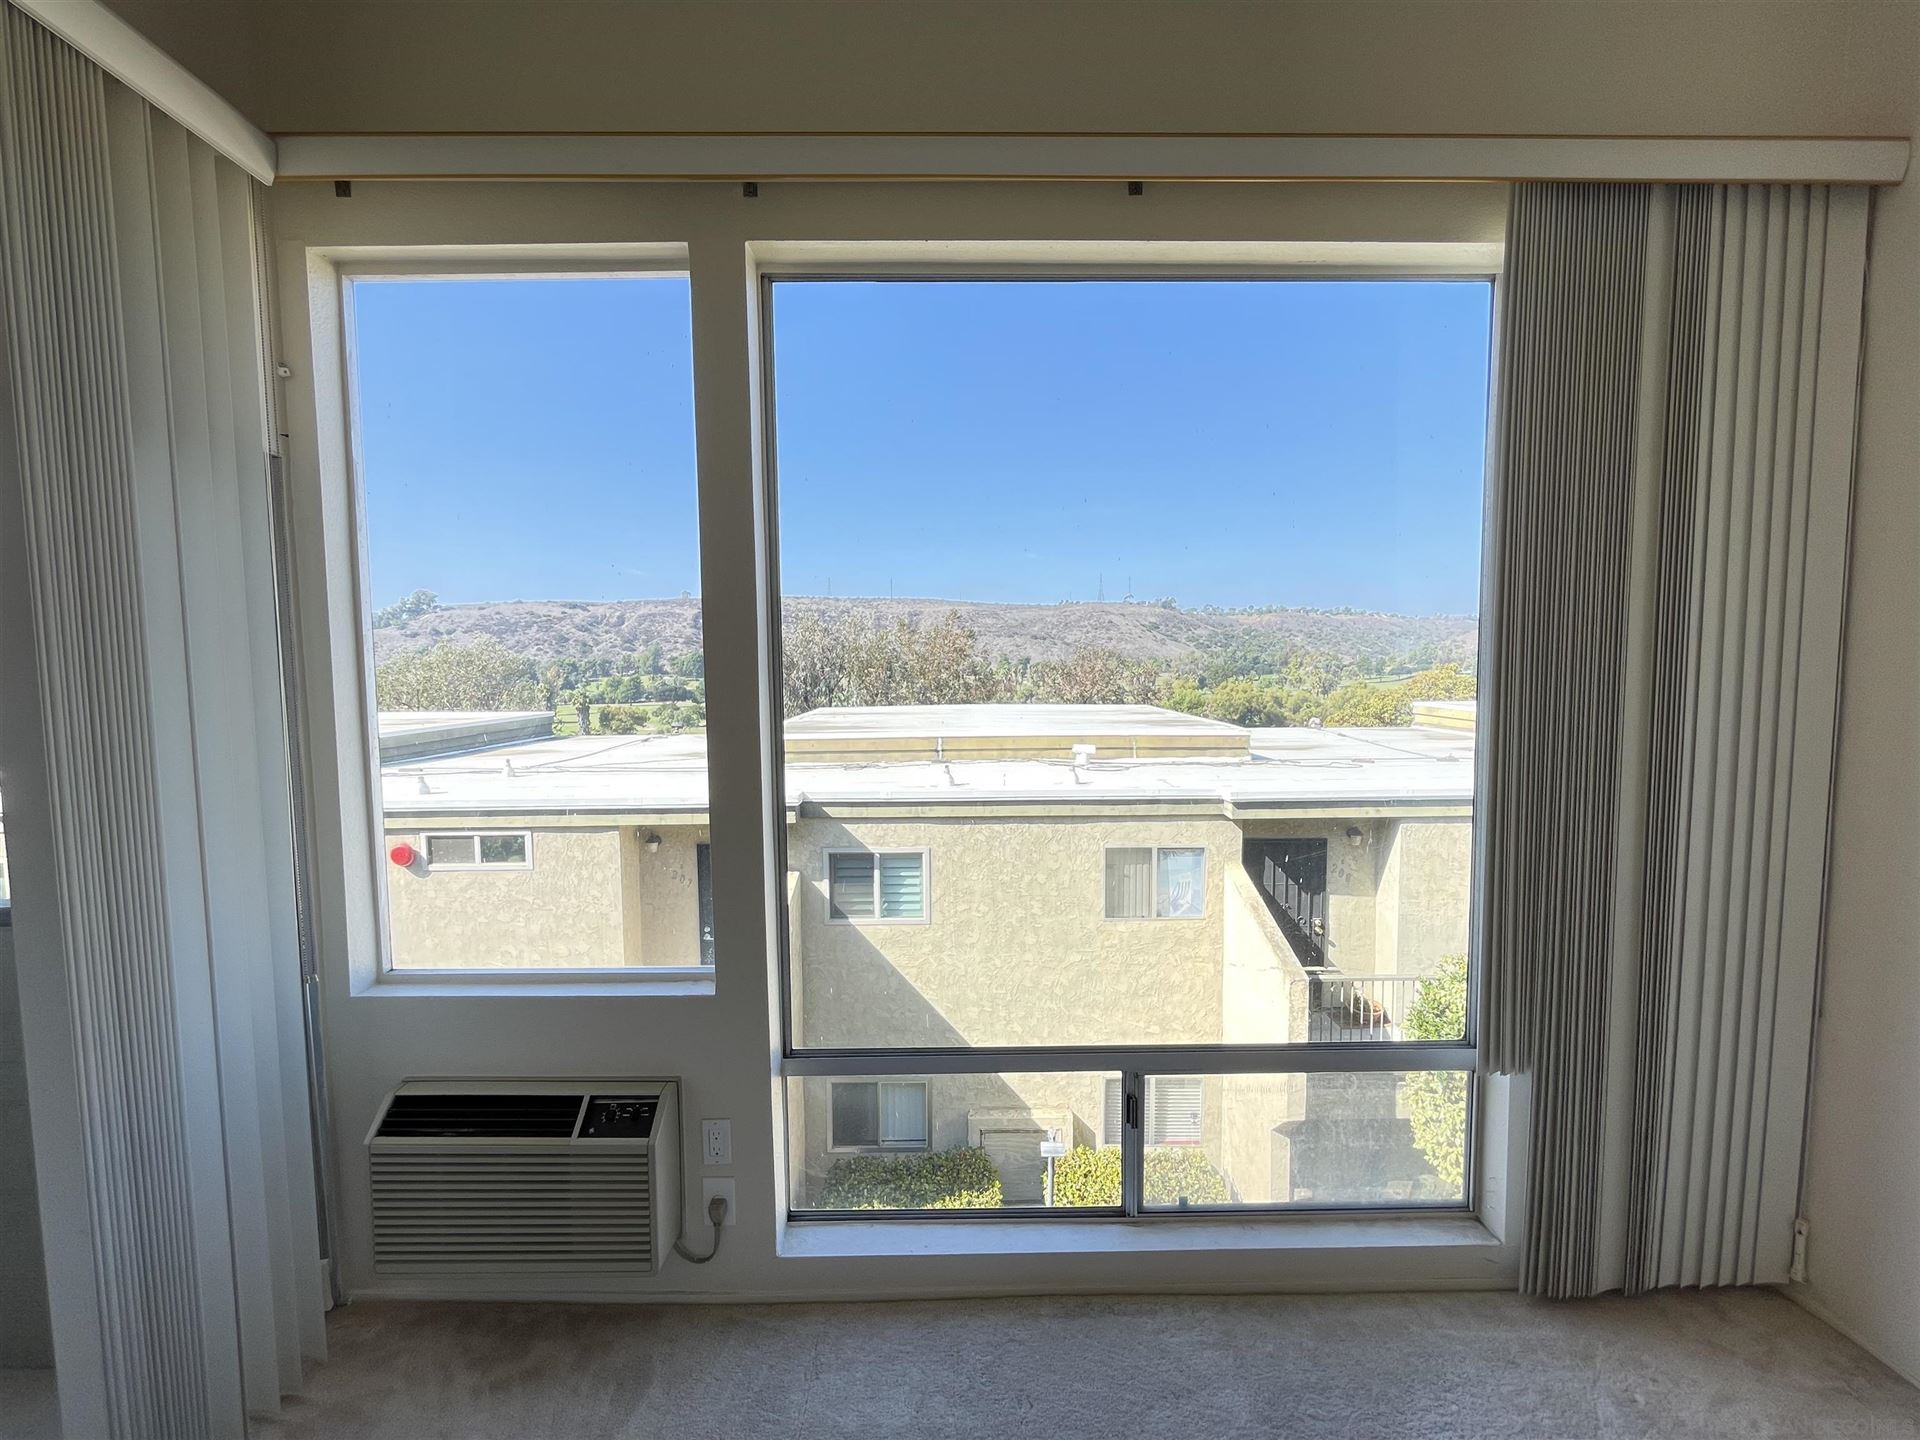 Photo of 6675 Mission Gorge Rd #A307, San Diego, CA 92120 (MLS # 210025445)